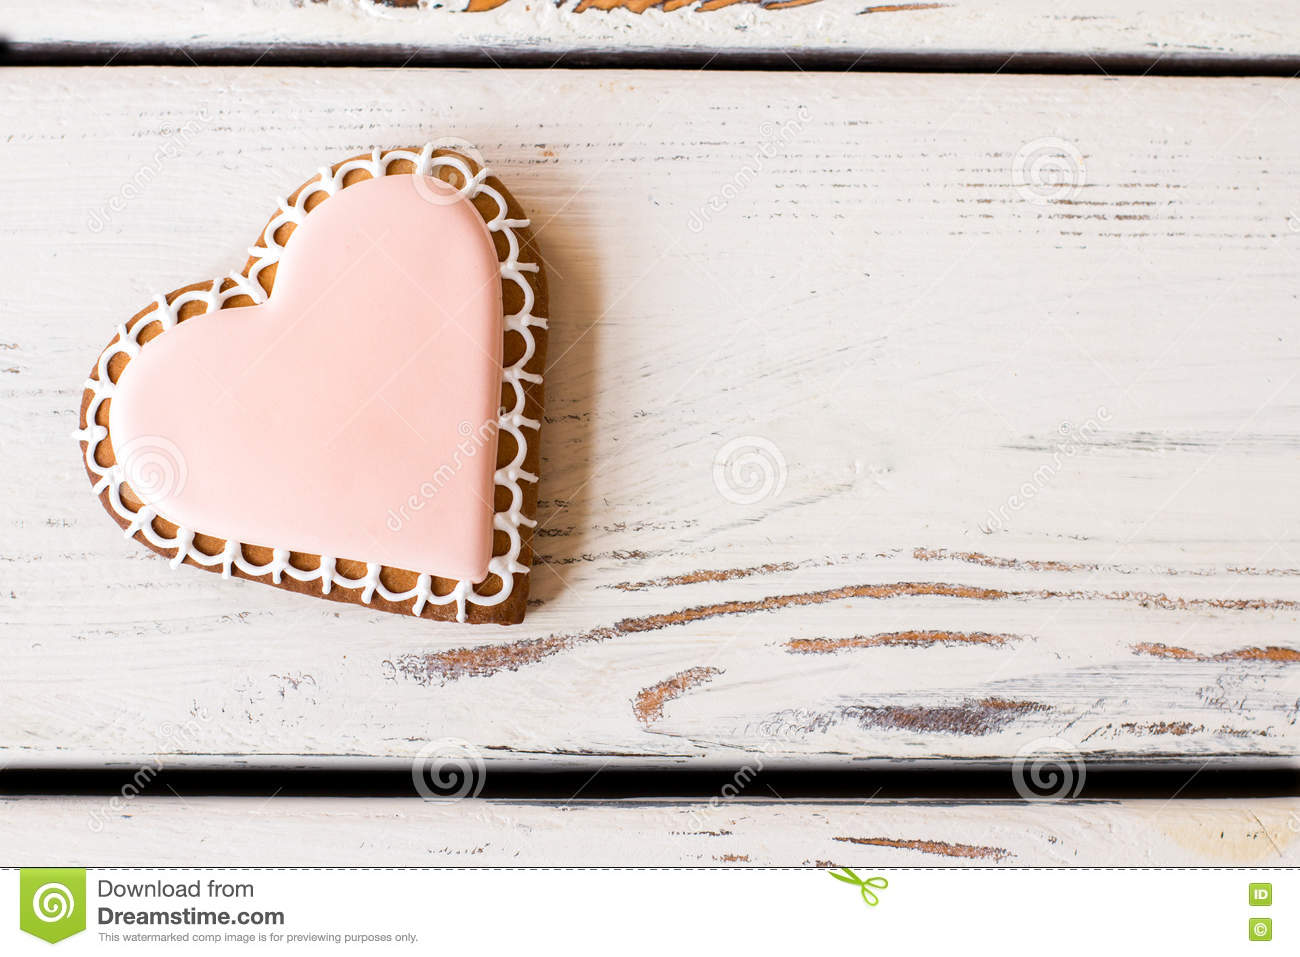 Top view of heart cookie.